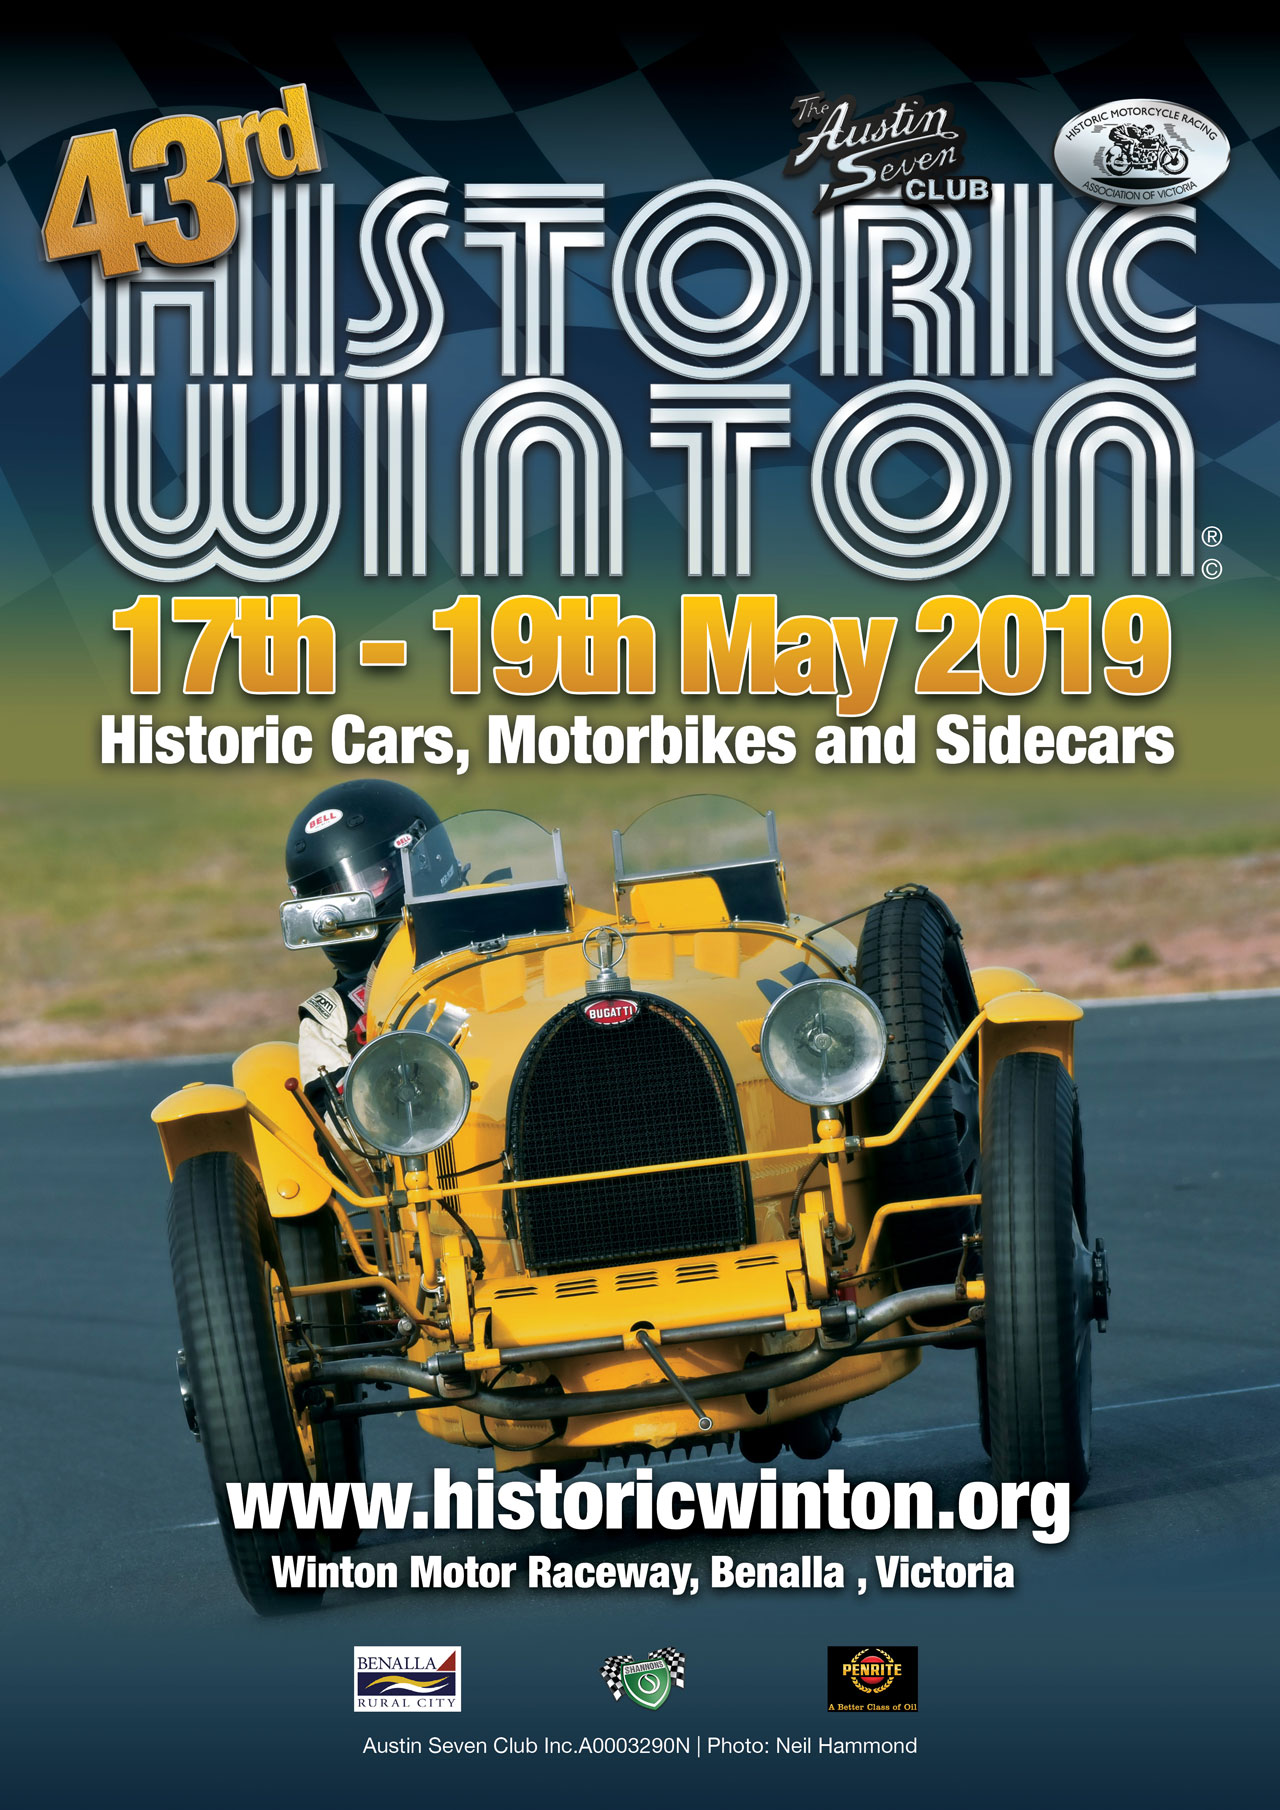 historic-winton-2019.jpg